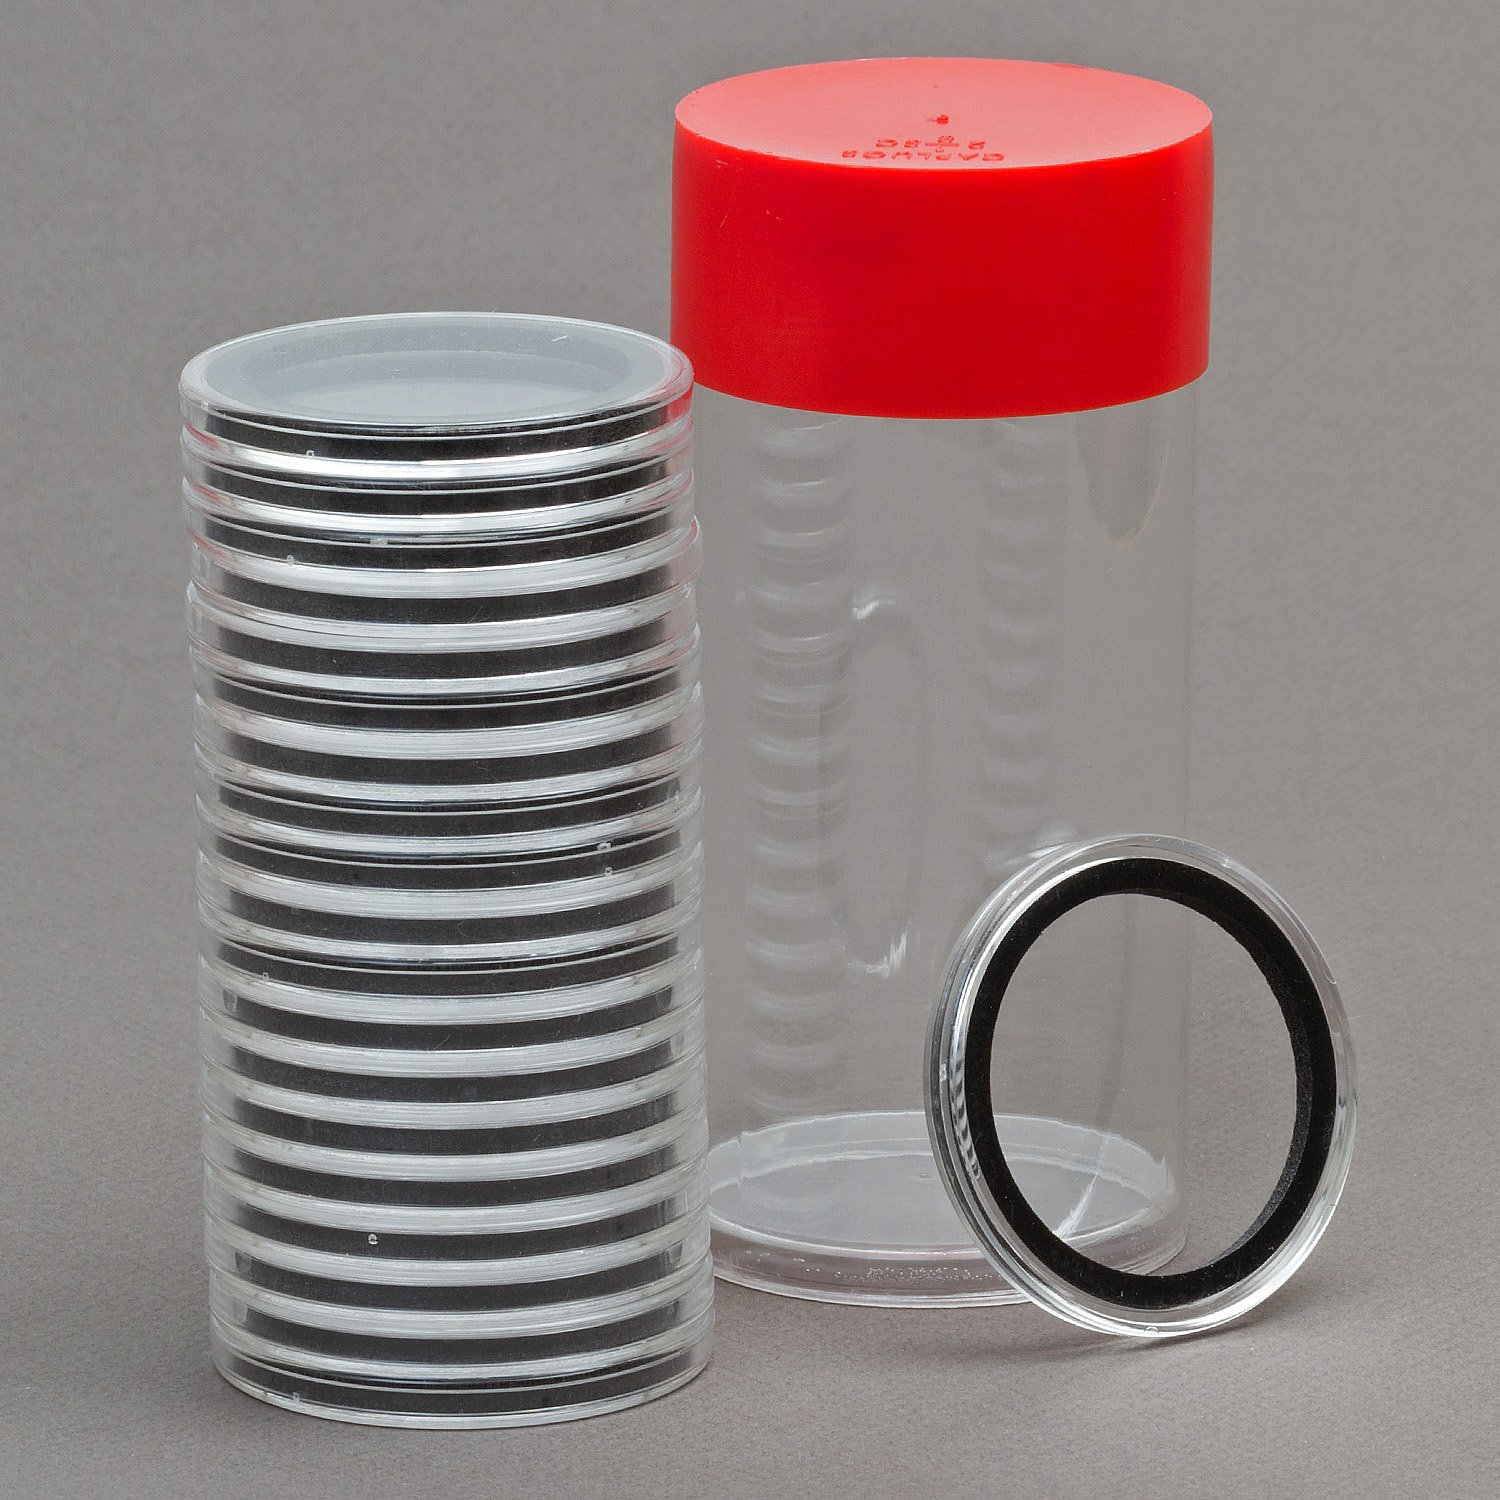 (1) Airtite Coin Holder Storage Container & (20) Black Ring 27mm Air-tite Coin Holder Capsules for 1/2oz American Gold Eagles